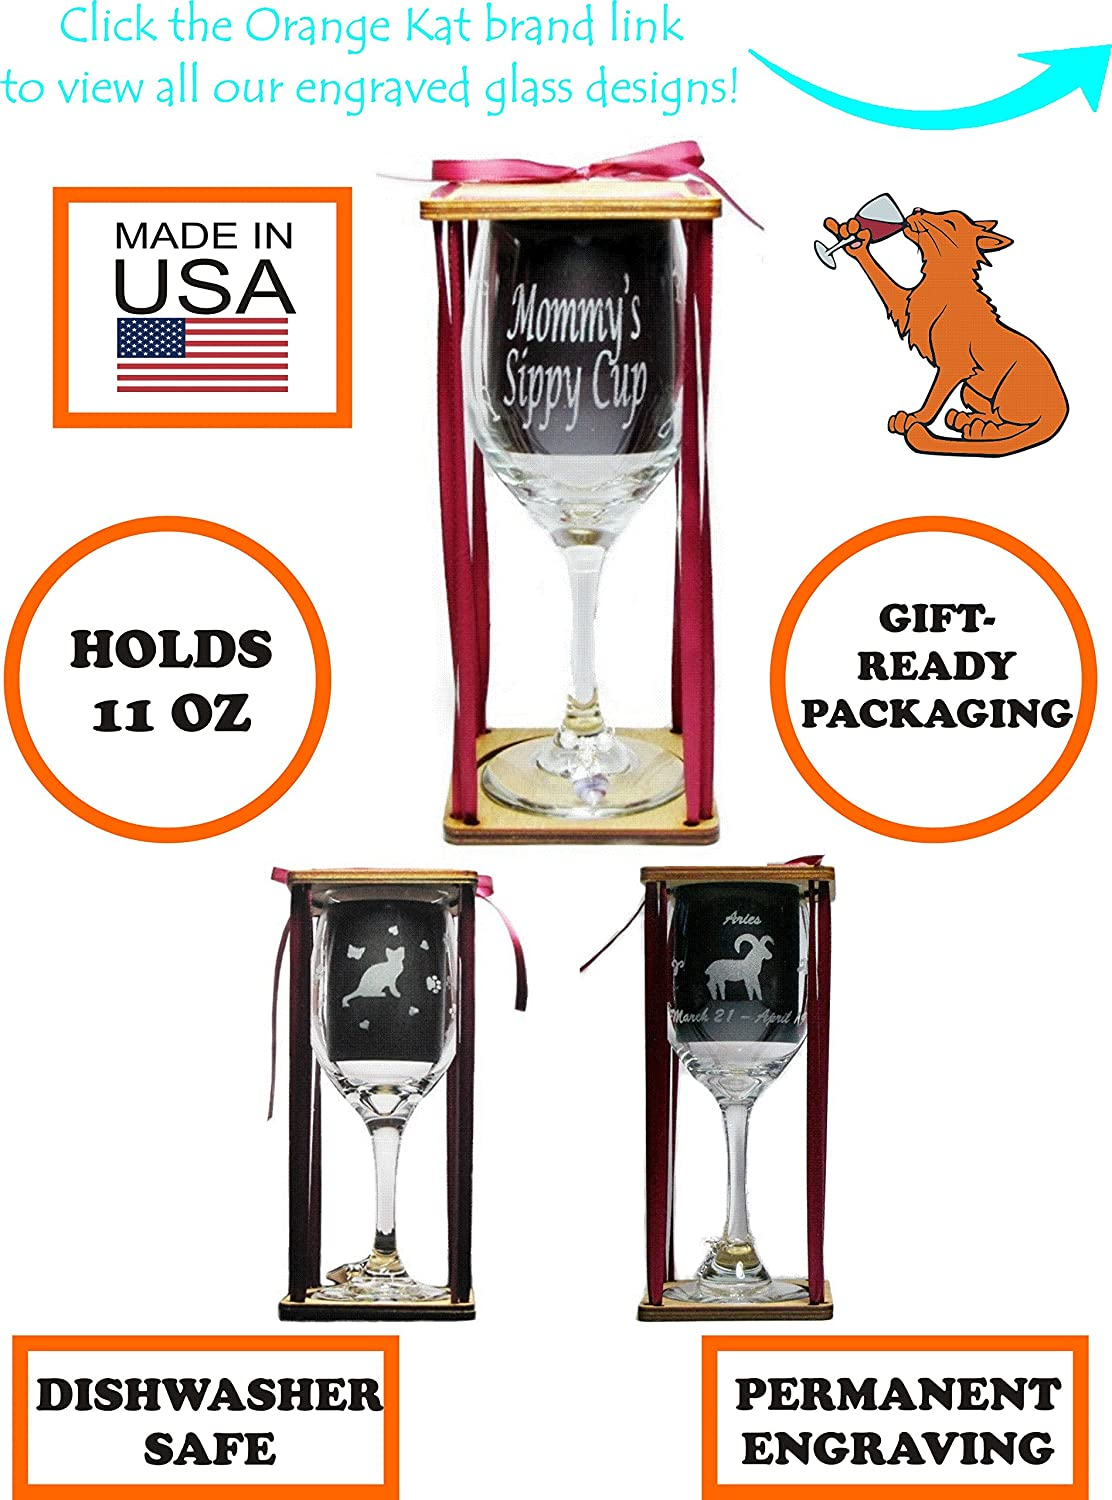 Mischief Managed Stemmed Wine Glass with Charm and Presentation Packaging Orange Kat WG-SSP